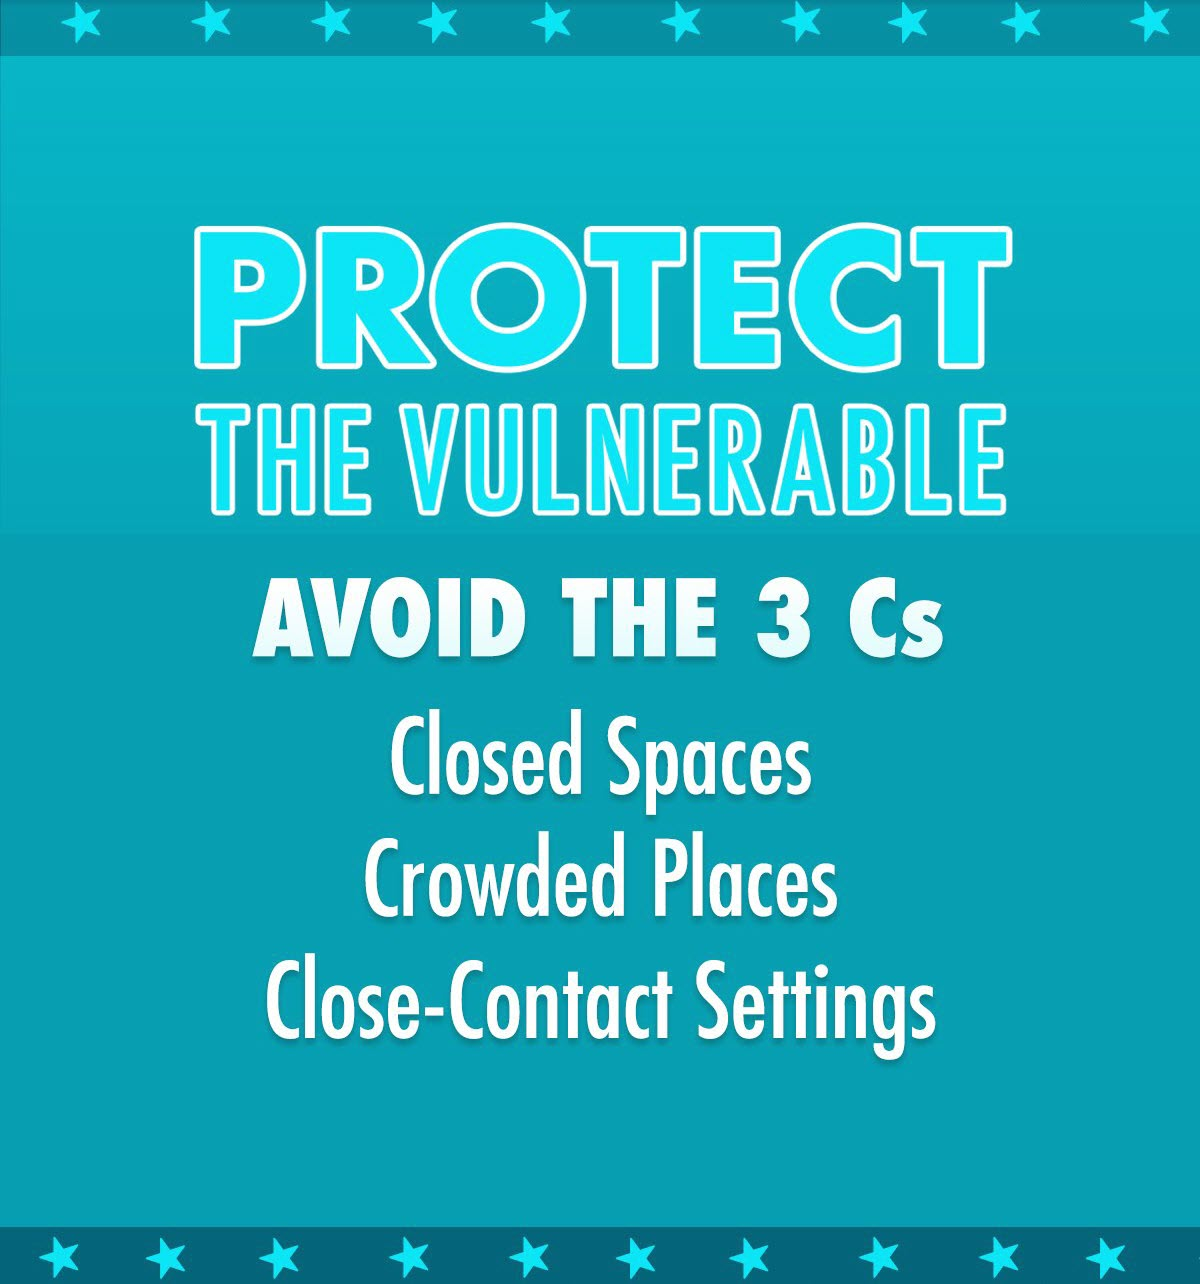 COVID-19 Protect the Vulnerable - Avoid the 3 C's